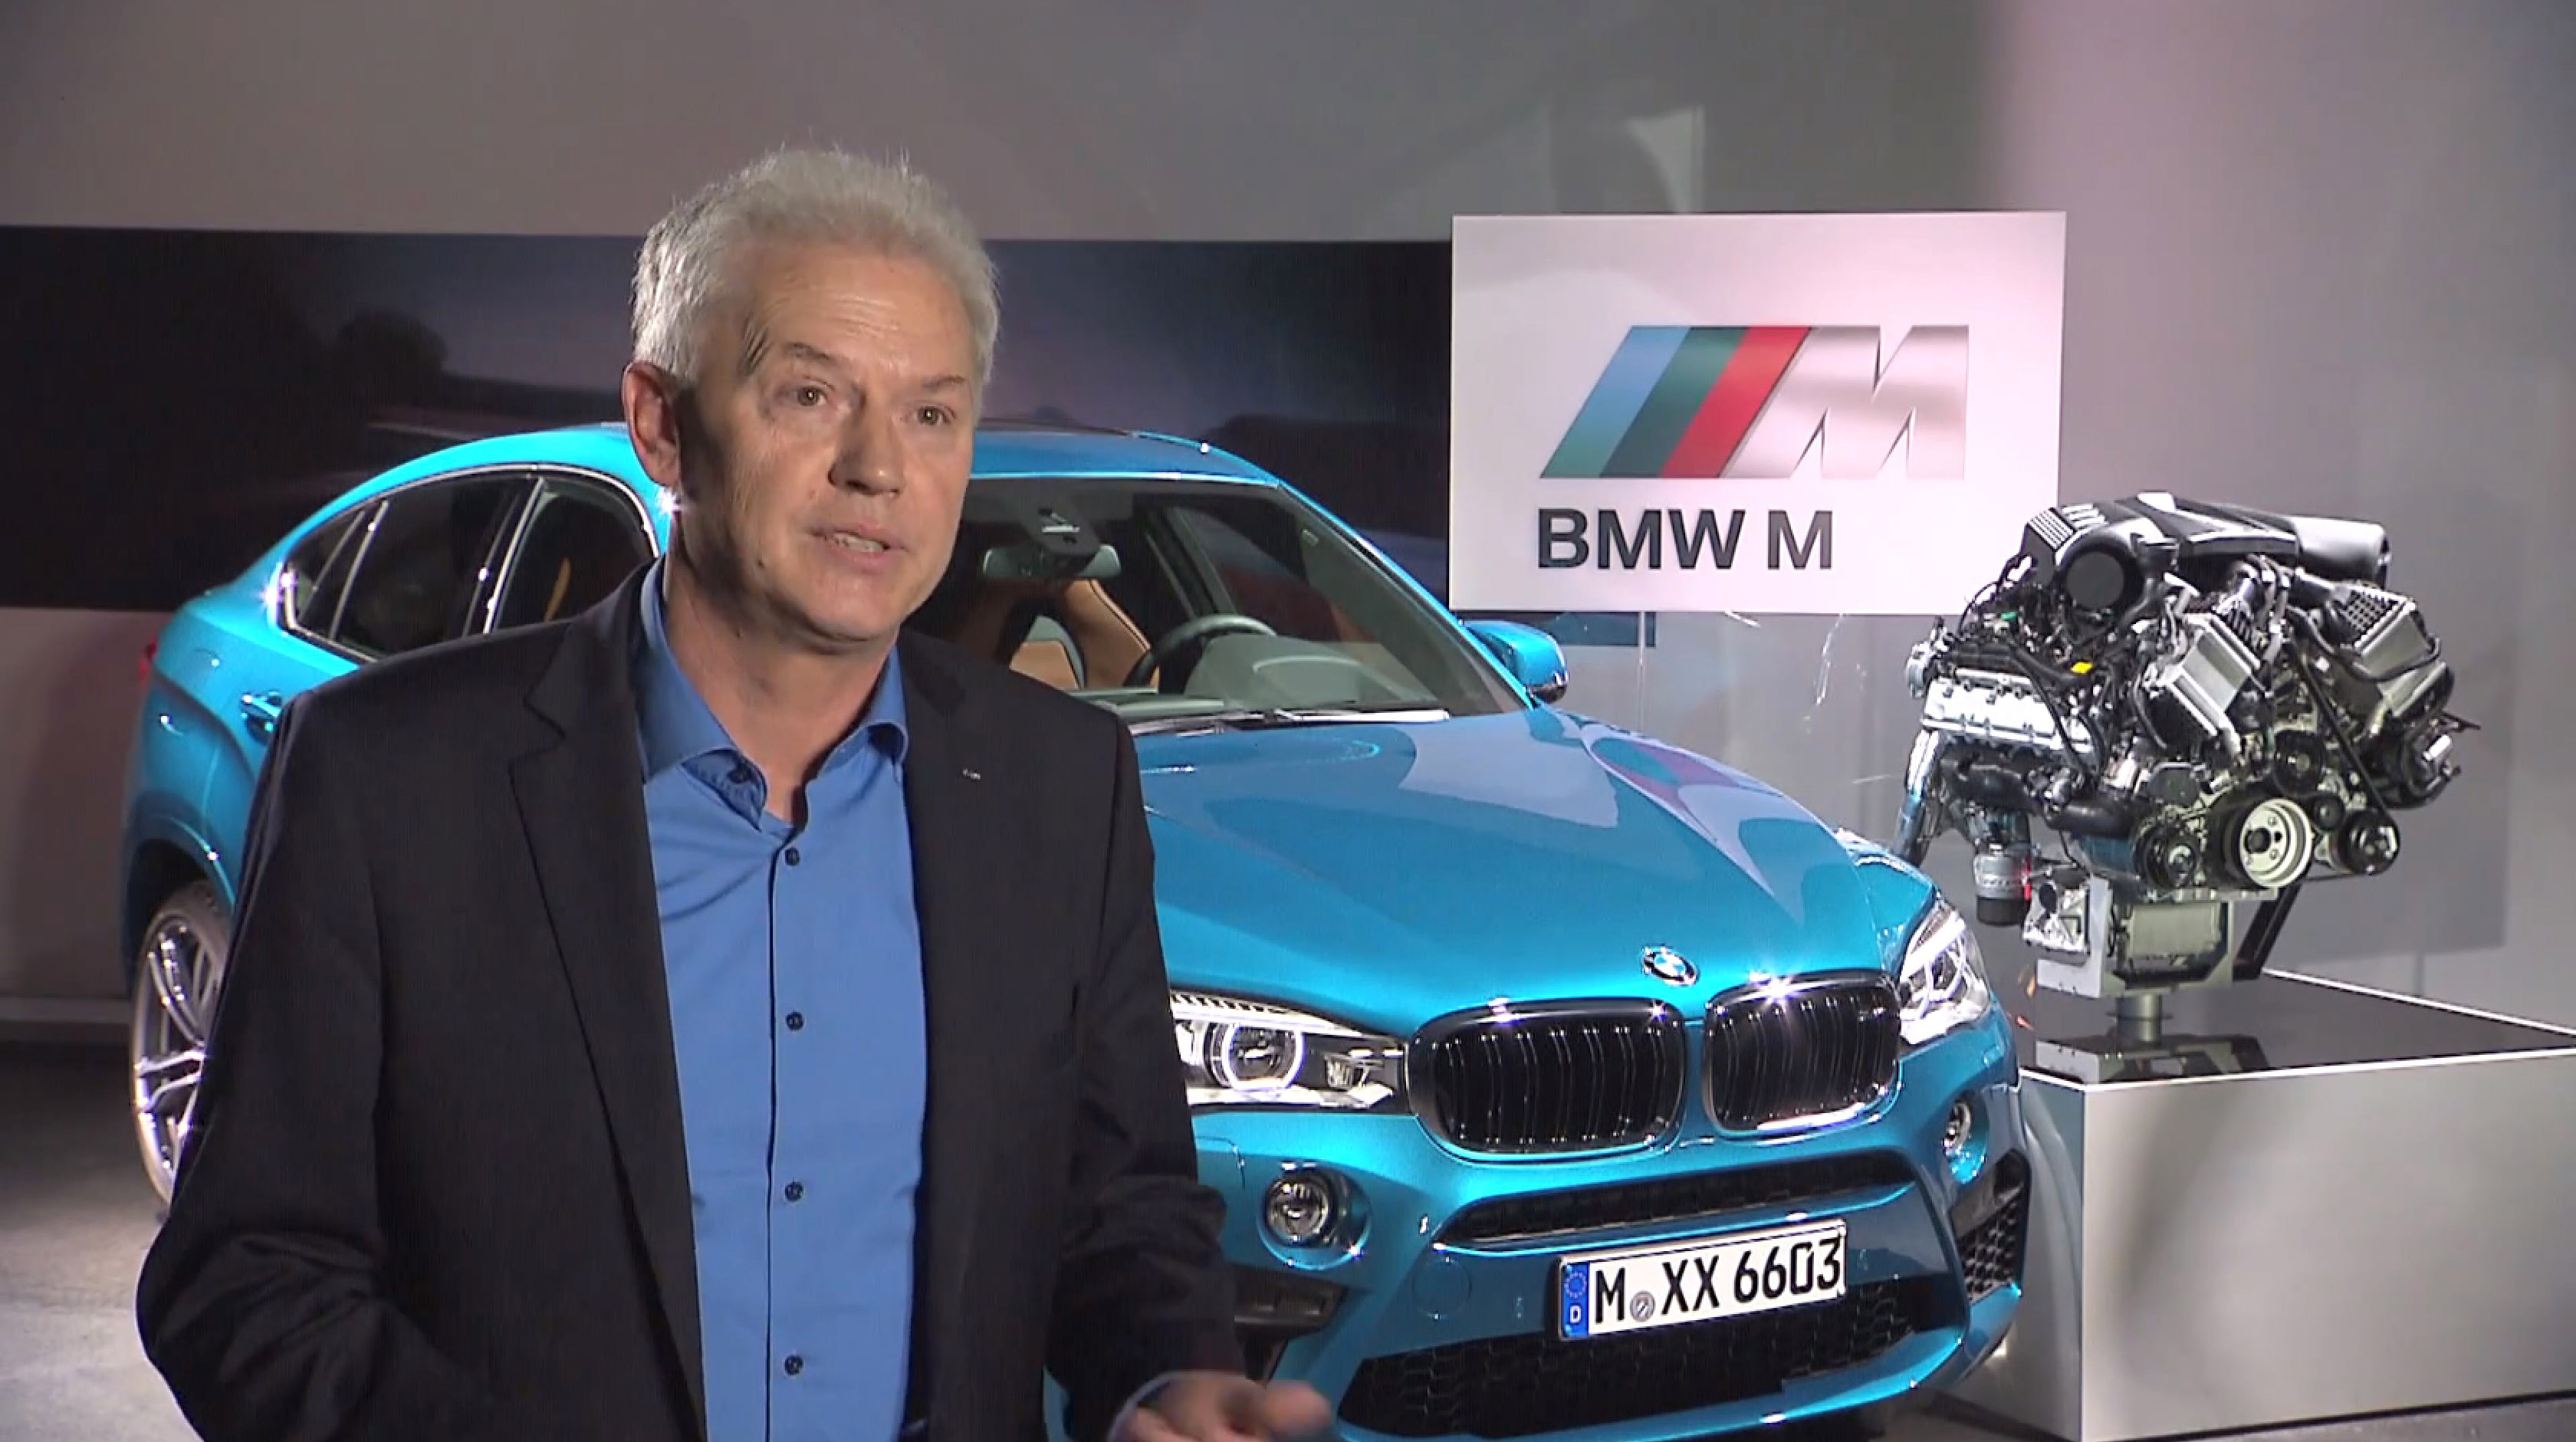 Another Long Time Bmw M Engineer Leaves Bmw This Time It S For Hyundai Autoevolution